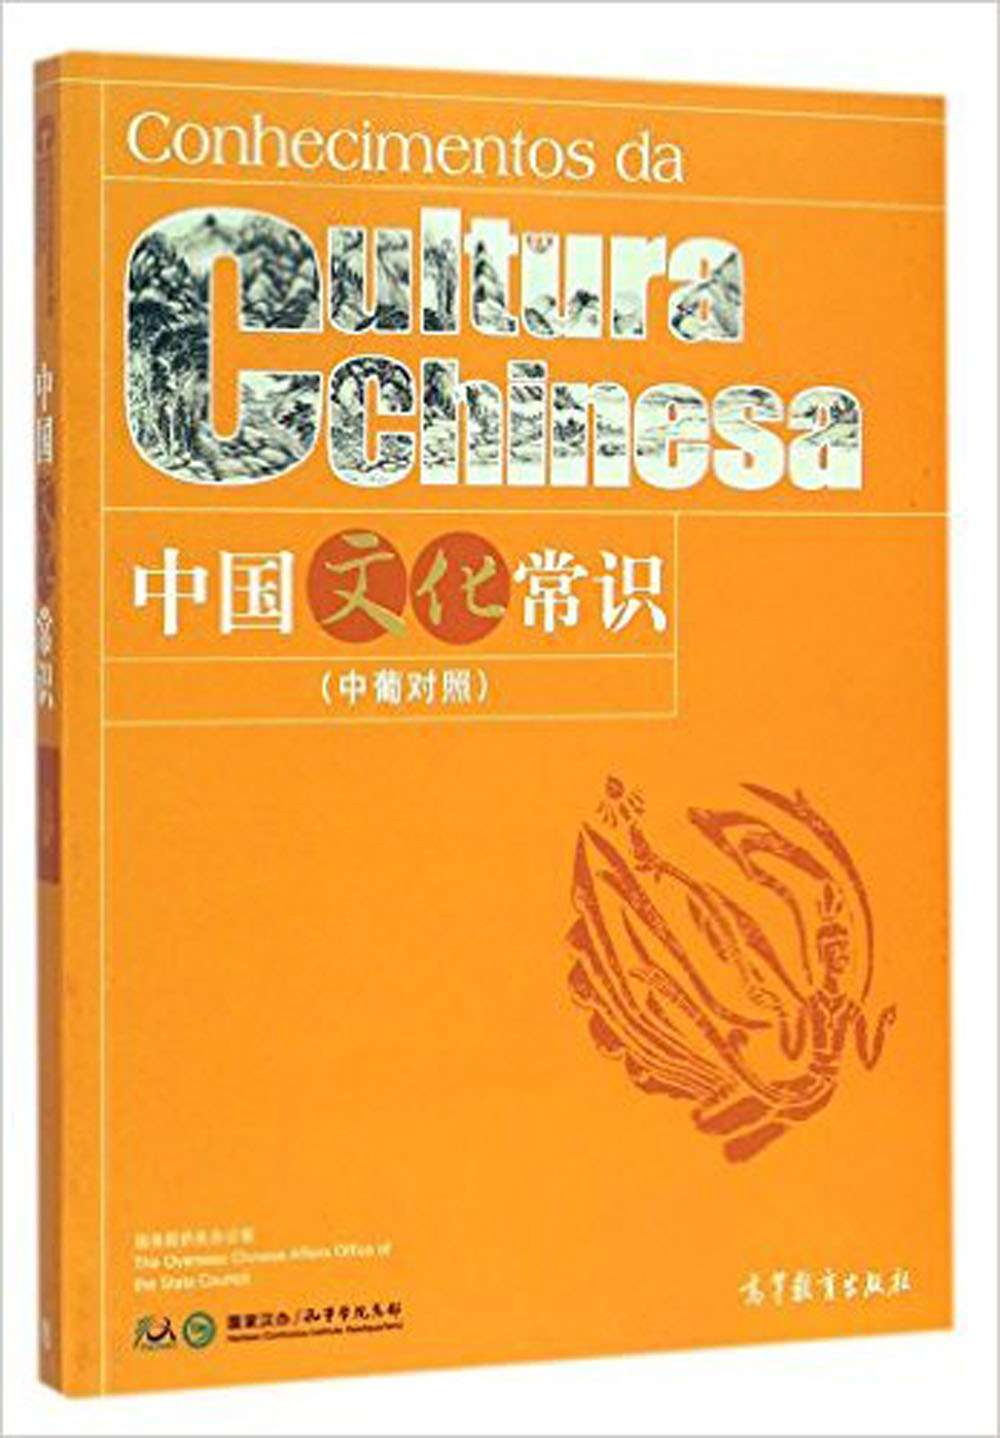 Common Knowledge about Chinese Culture (Language In Chinese and Portuguese) 281 Page for adult learn chinese culture about page 3 page 4